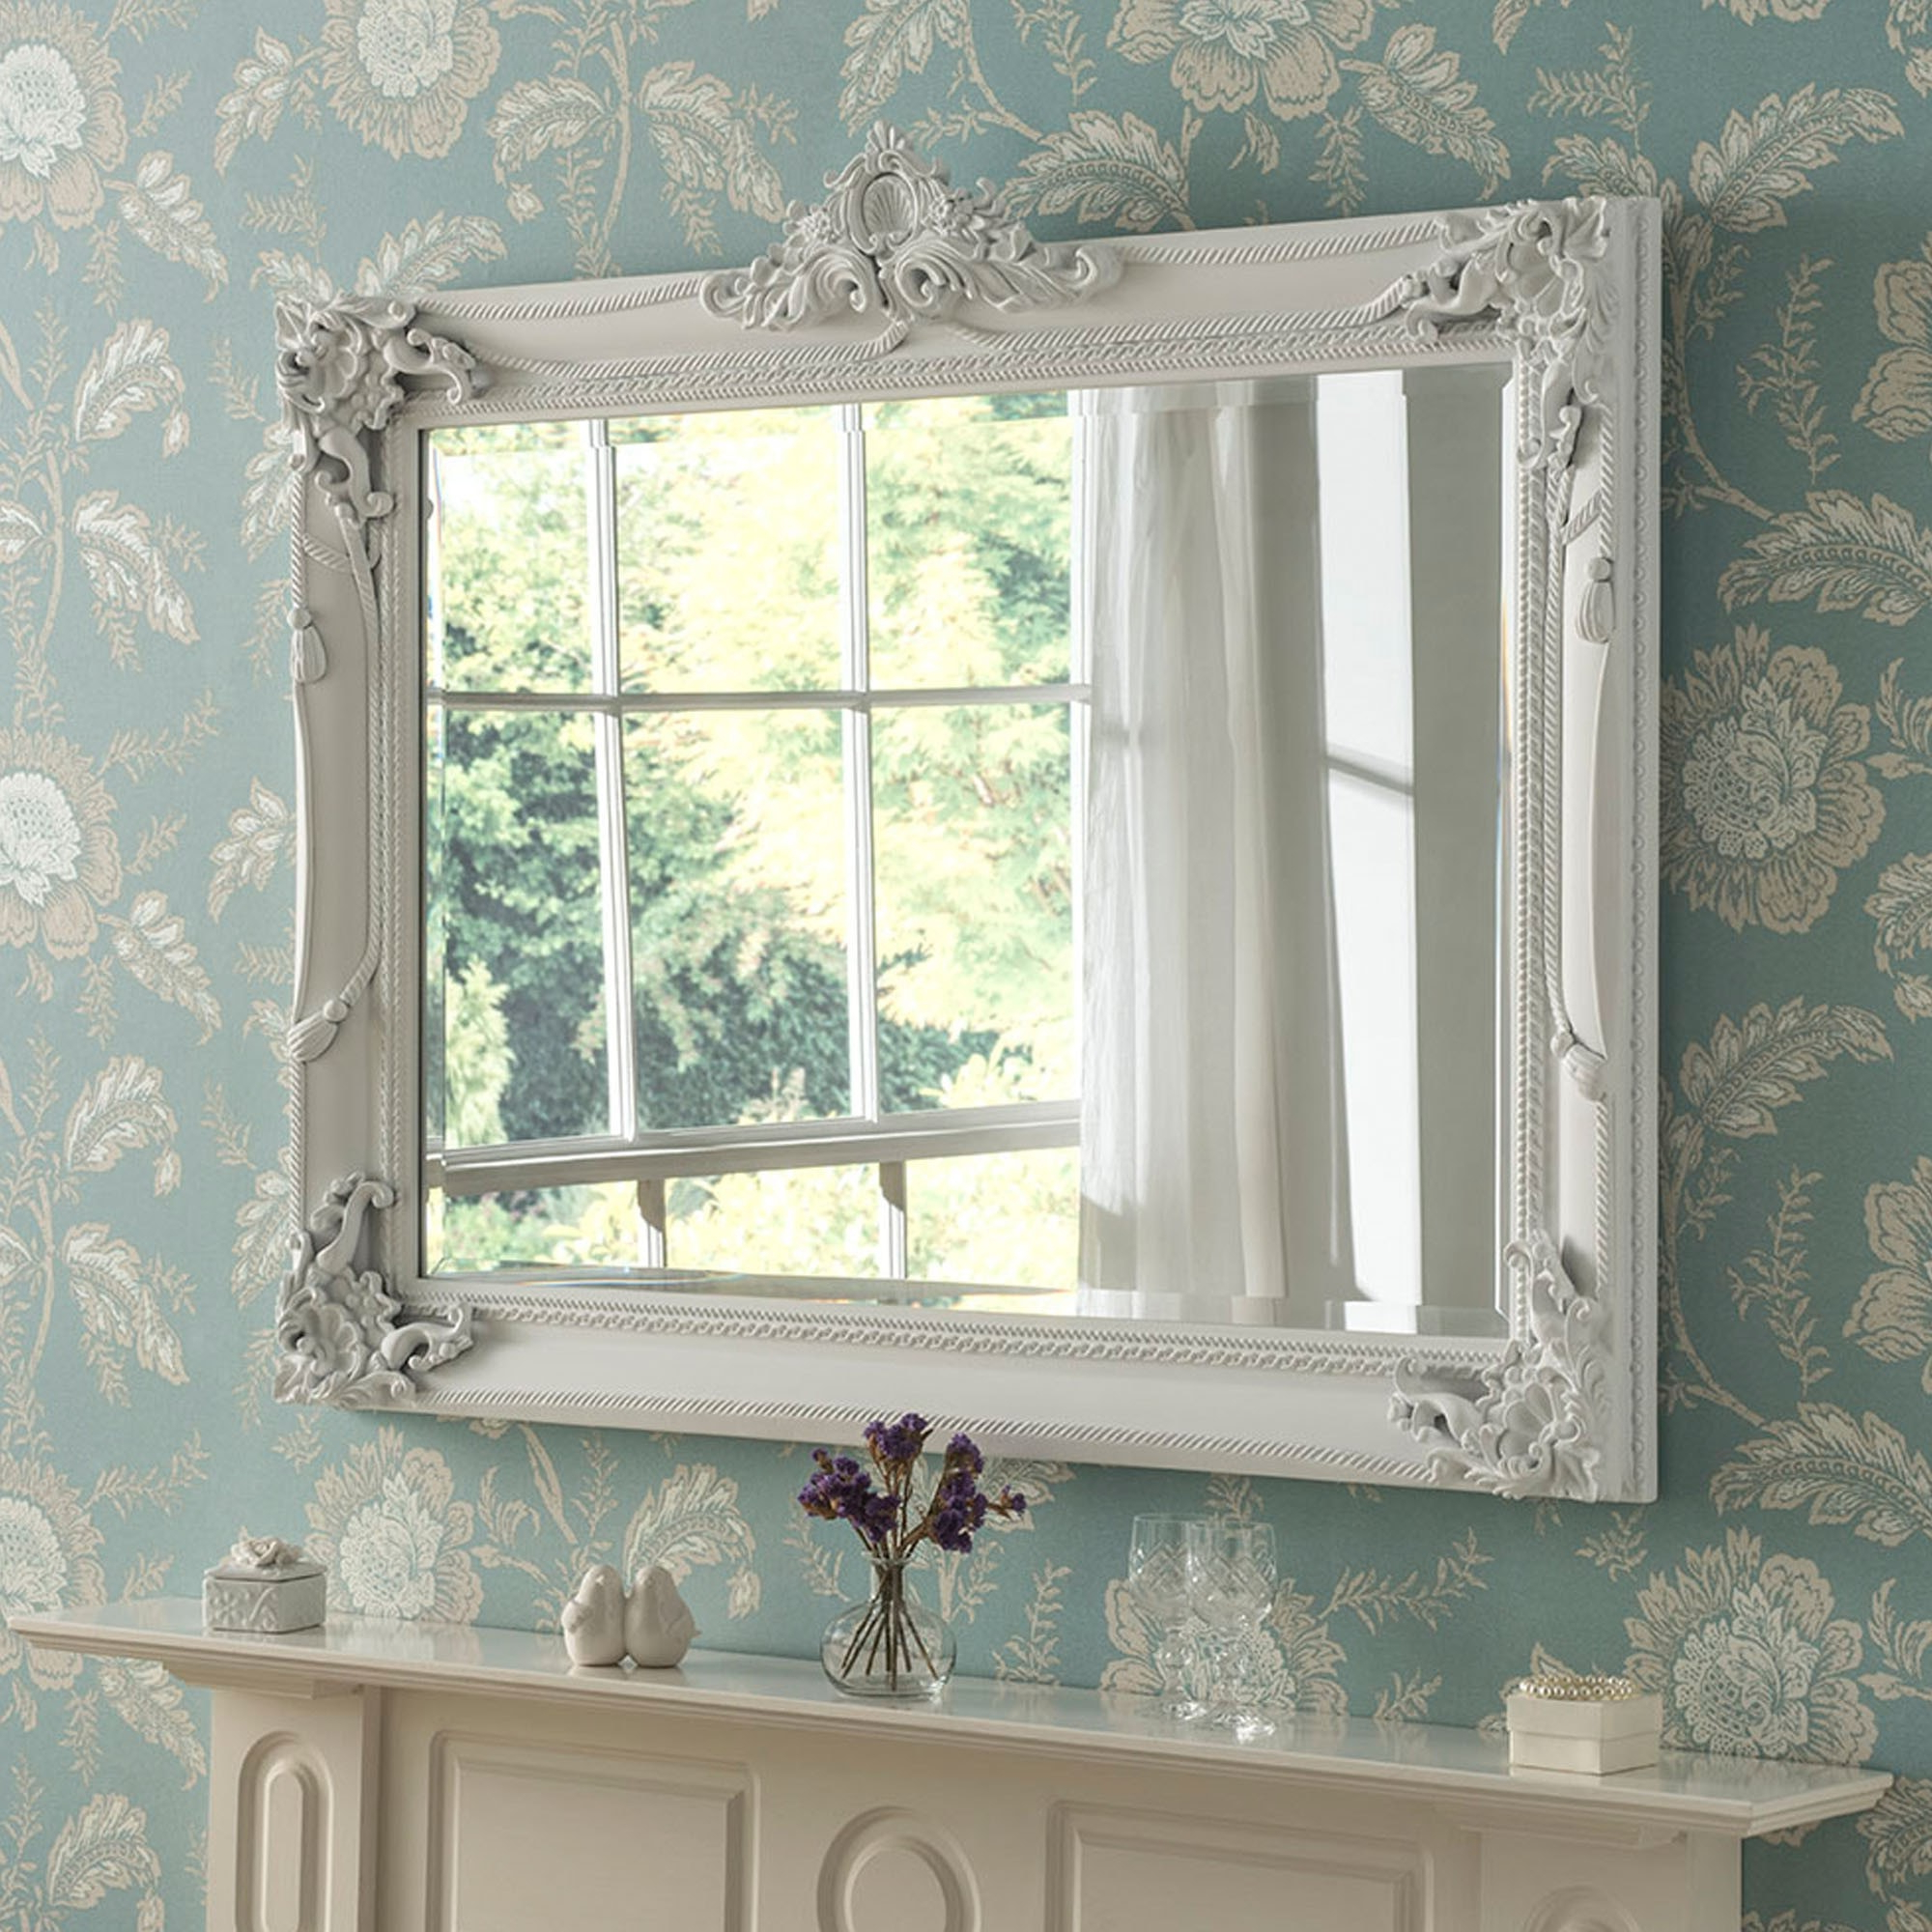 White Antique French Style Ornate Wall Mirror Regarding 2020 Ornate Wall Mirrors (View 14 of 20)